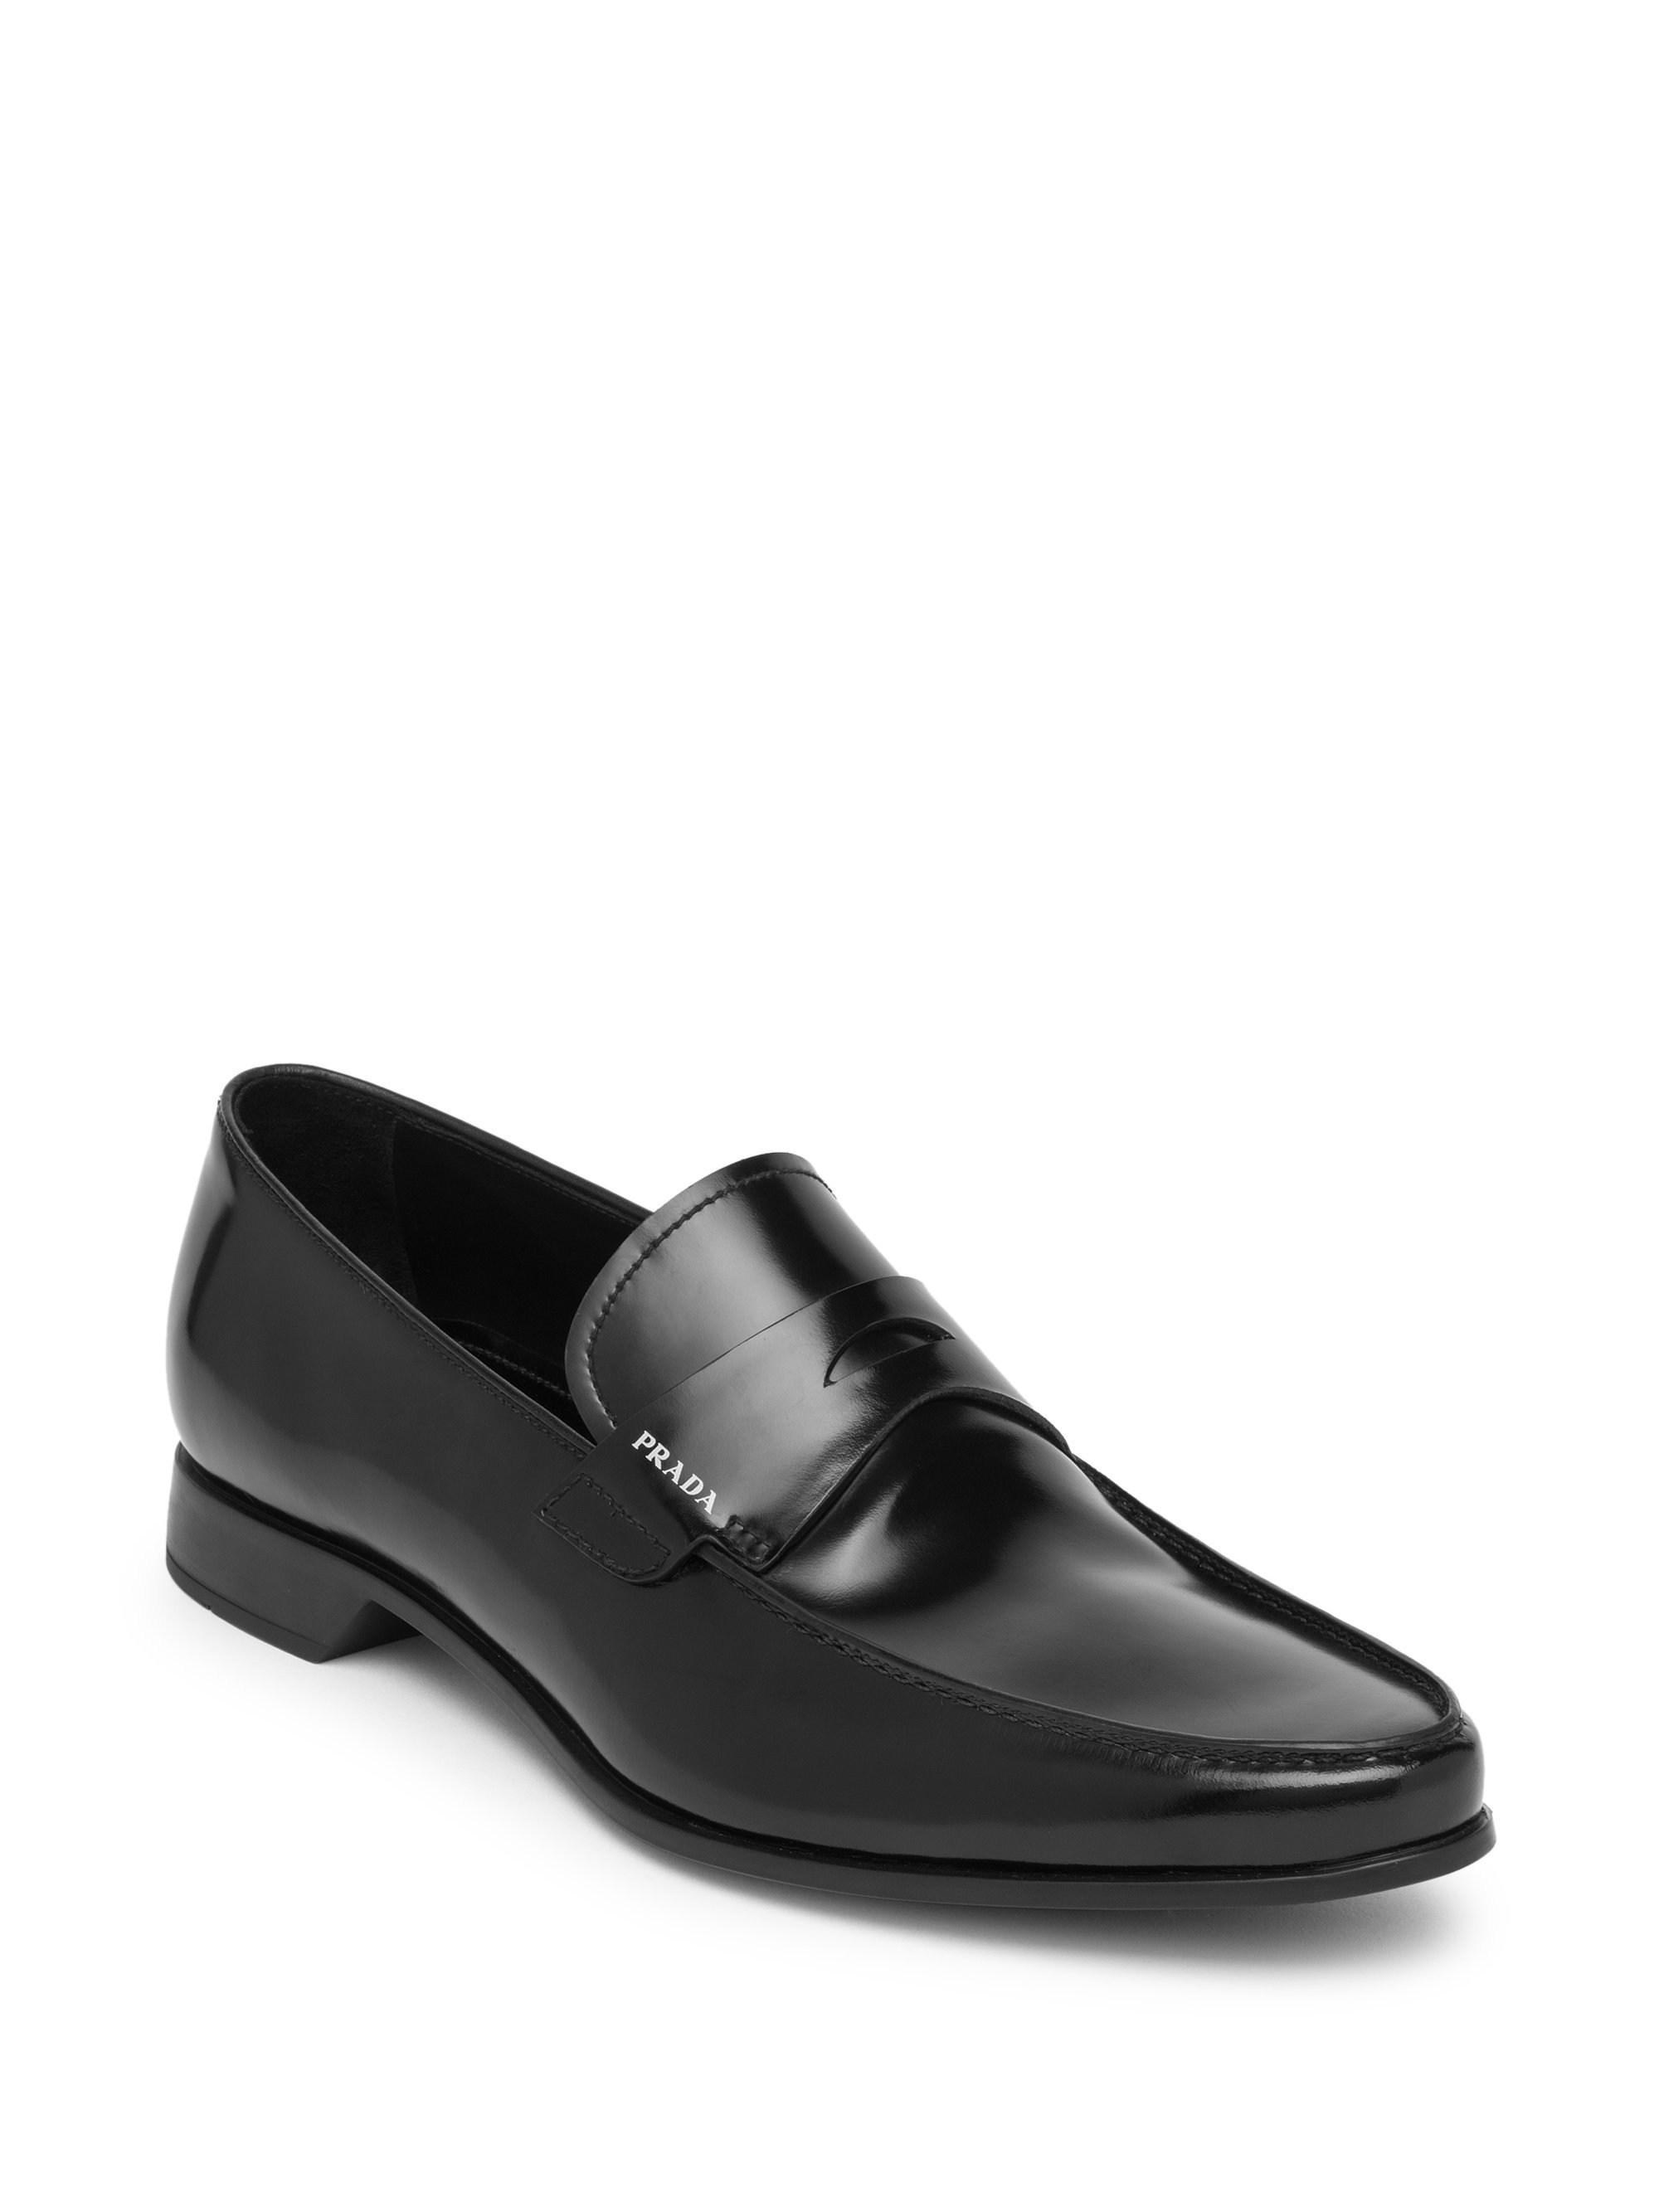 01a53243aa9 Prada - Black Spazzolato Fume Leather Loafers for Men - Lyst. View  fullscreen